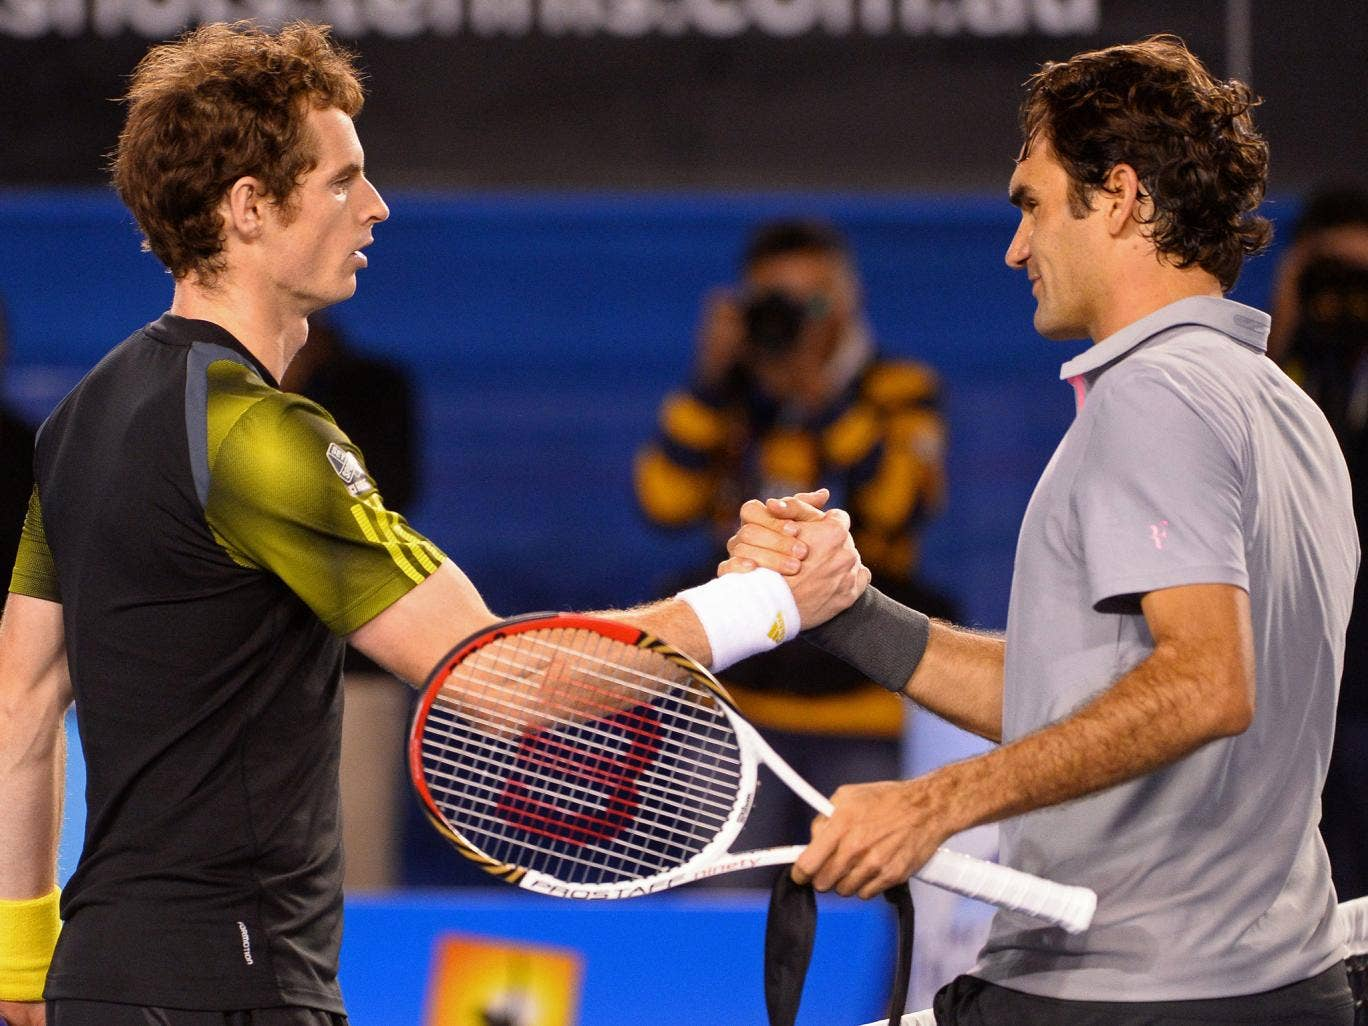 Andy Murray and Roger Federer pictured after their 2013 Australian Open semi-final